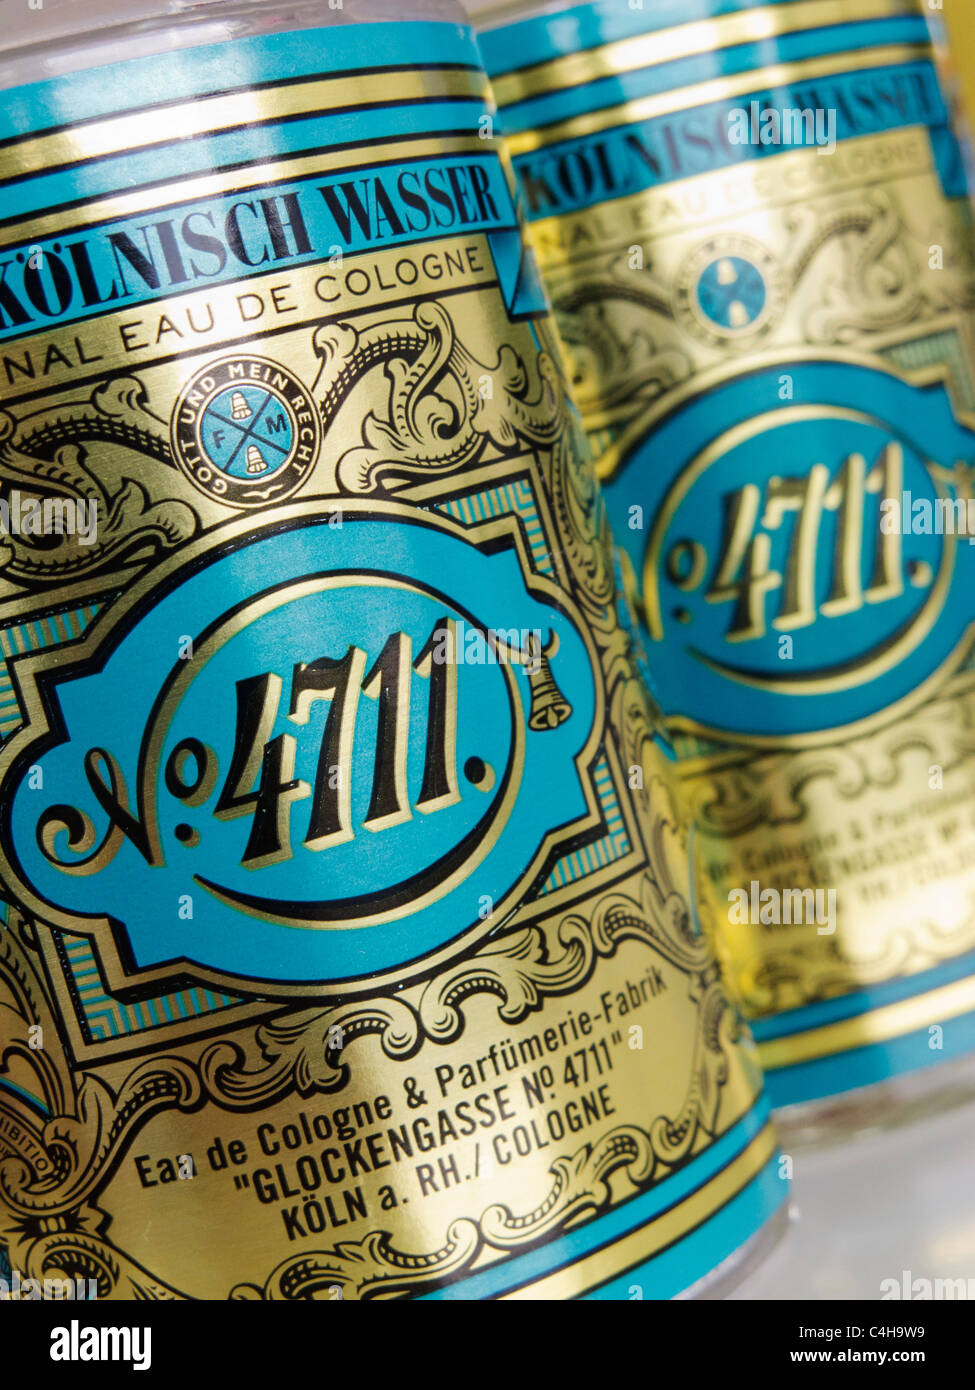 Detail of bottles of famous 4711 brand of Eau de Cologne from the city in Germany - Stock Image